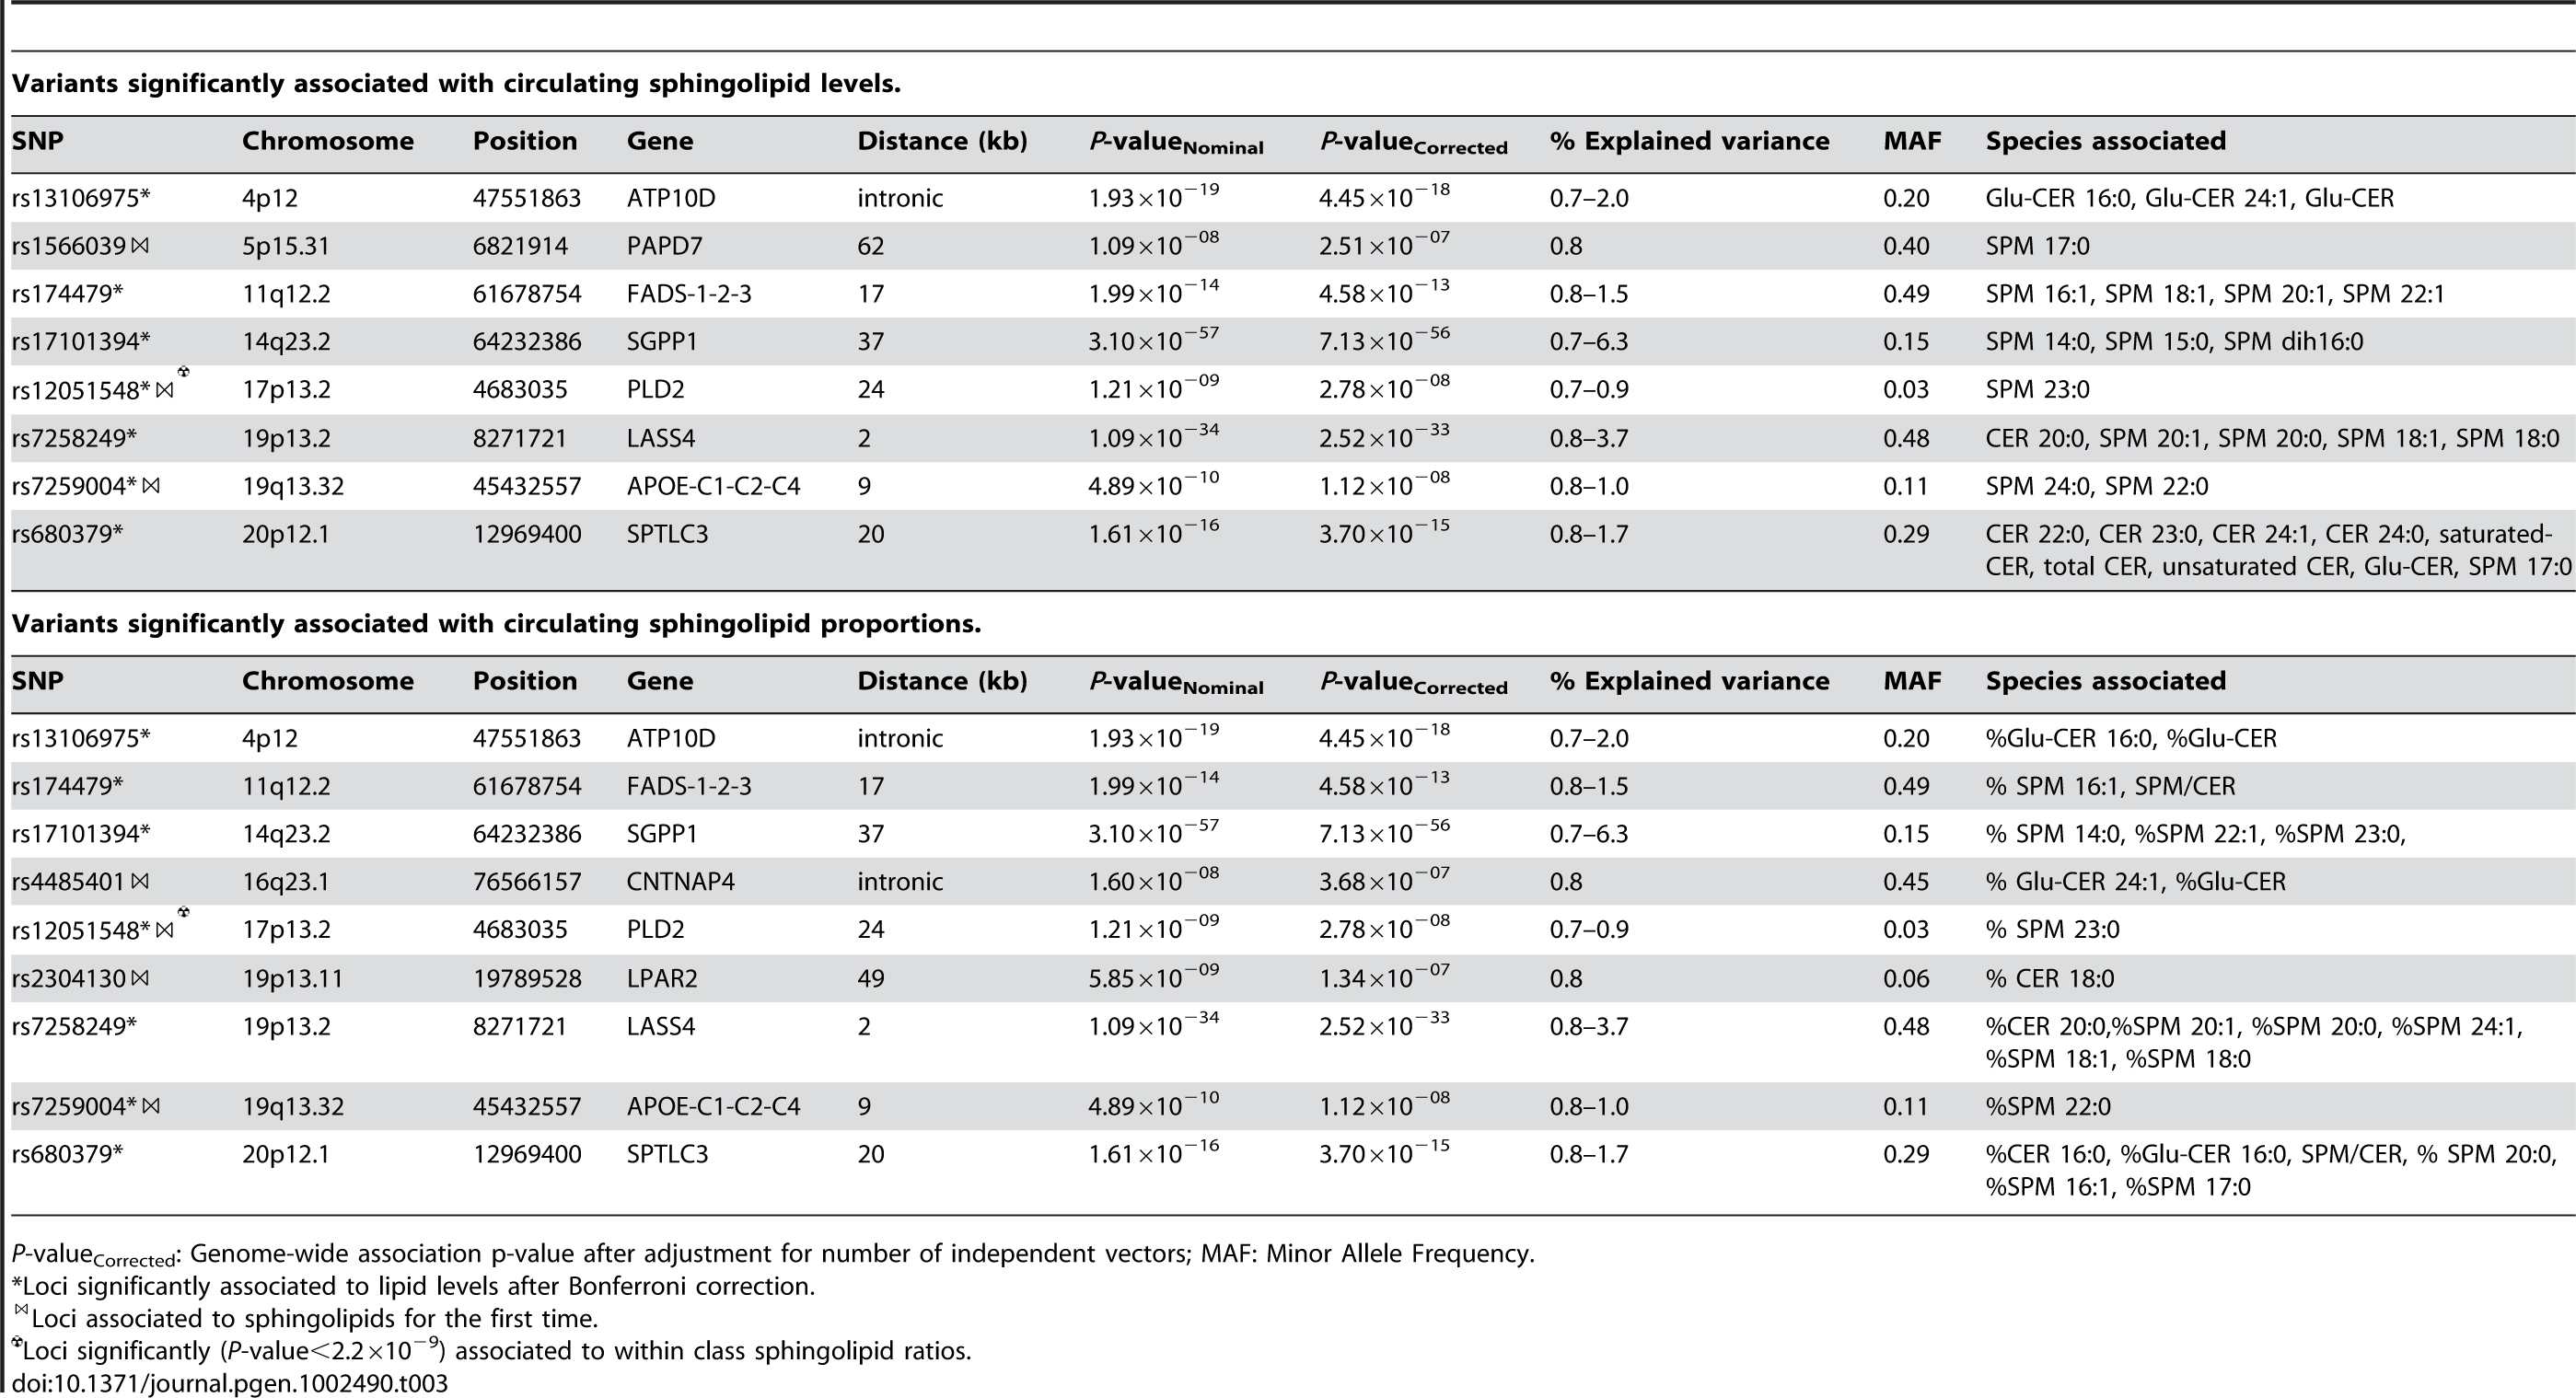 Variants significantly associated with circulating sphingolipid levels and proportions.